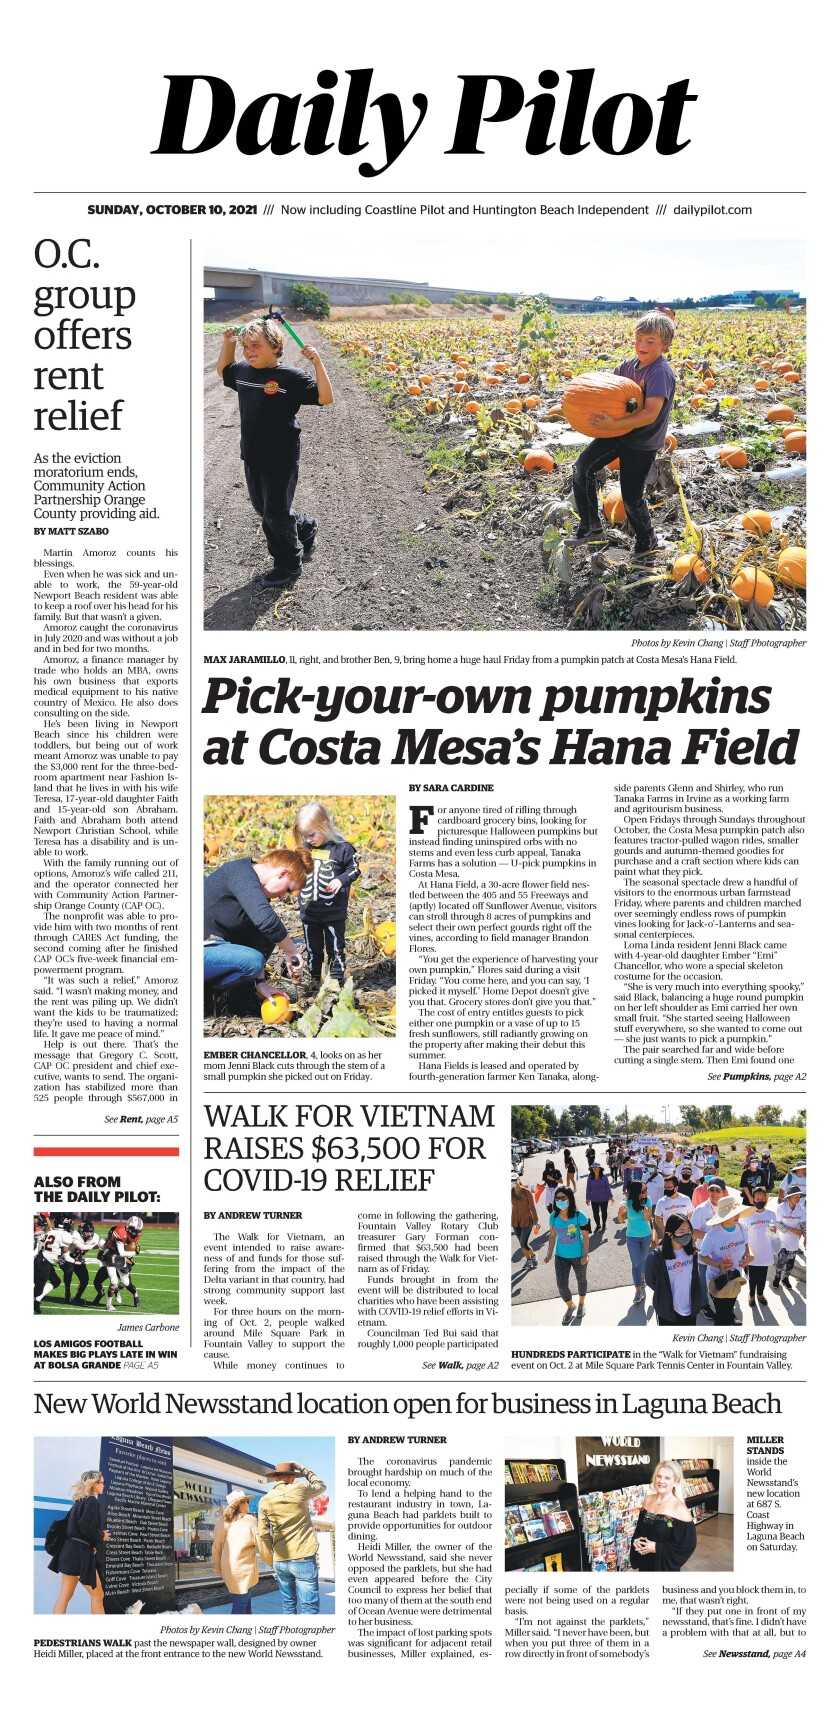 Front page of Daily Pilot e-newspaper for Sunday, Oct. 10, 2021.